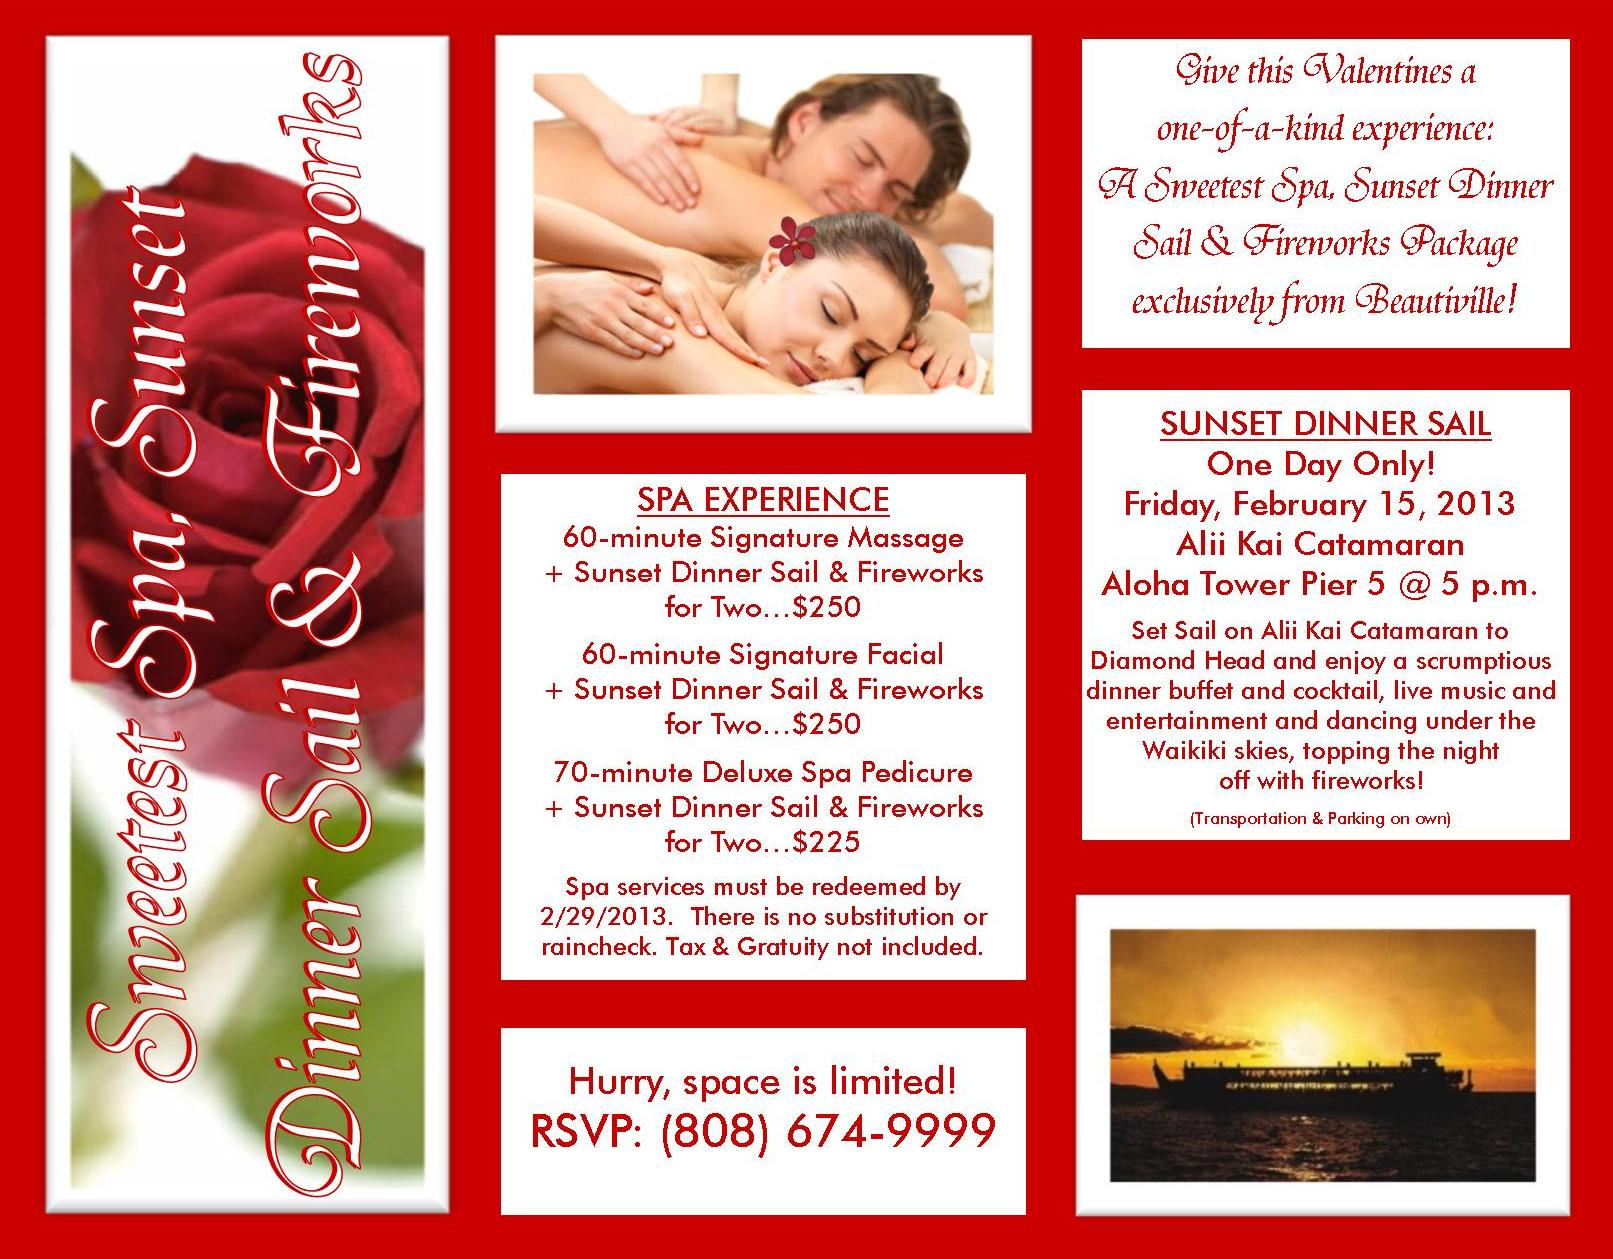 Valentines Sweetest Spa, Sunset Dinner Sail & Fireworks